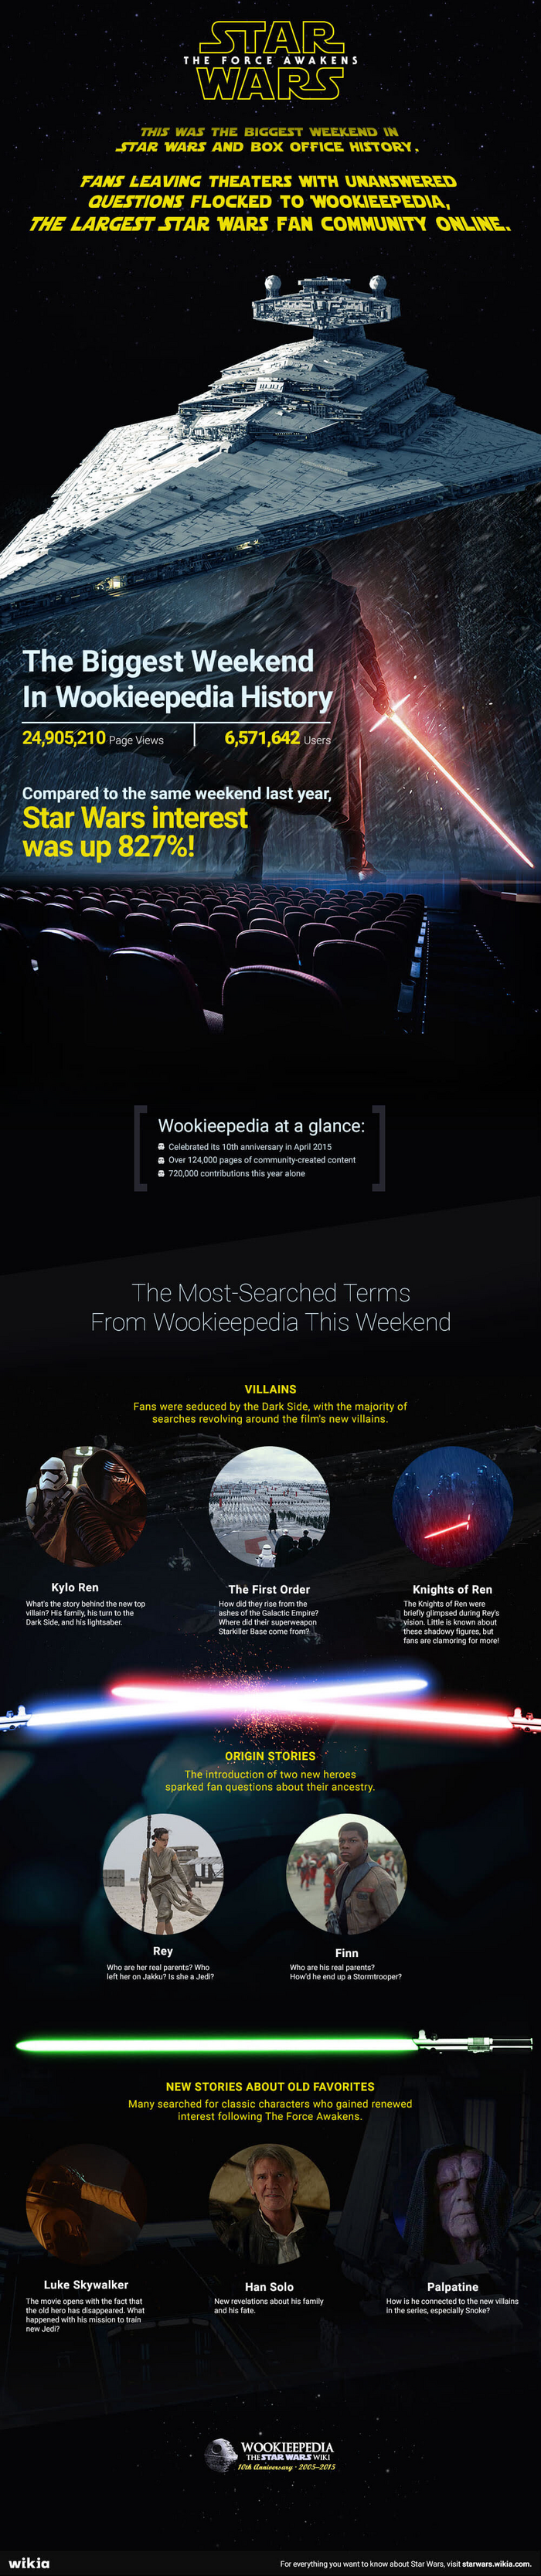 The Force Awakens Wookieepedia Opening Weekend Infographic